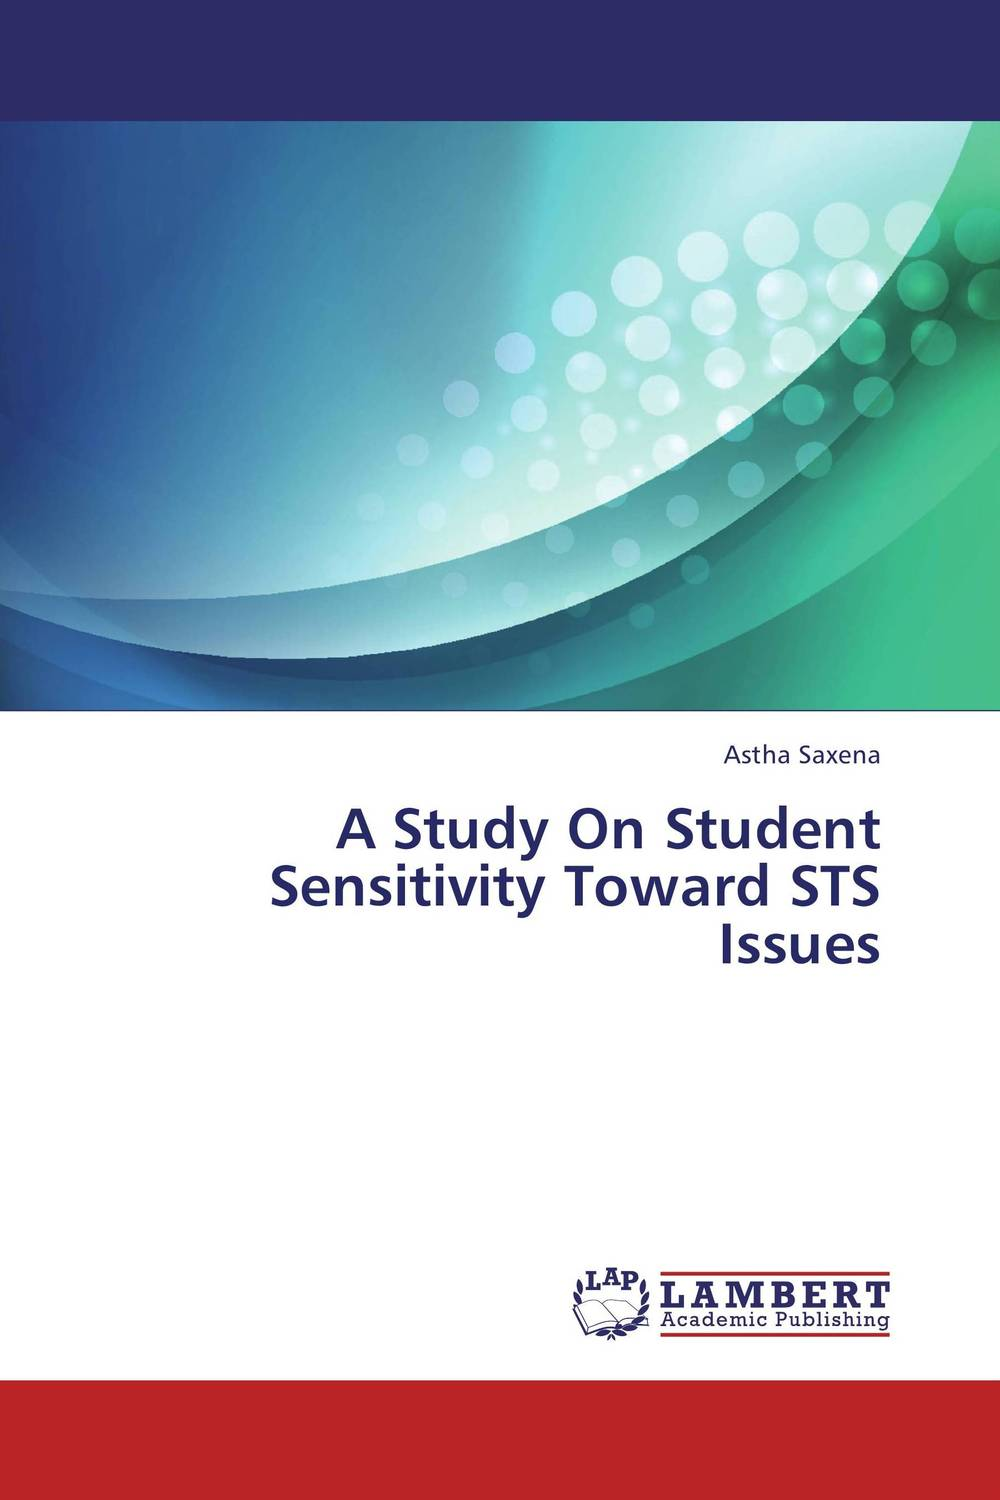 A Study On Student Sensitivity Toward STS Issues voluntary associations in tsarist russia – science patriotism and civil society